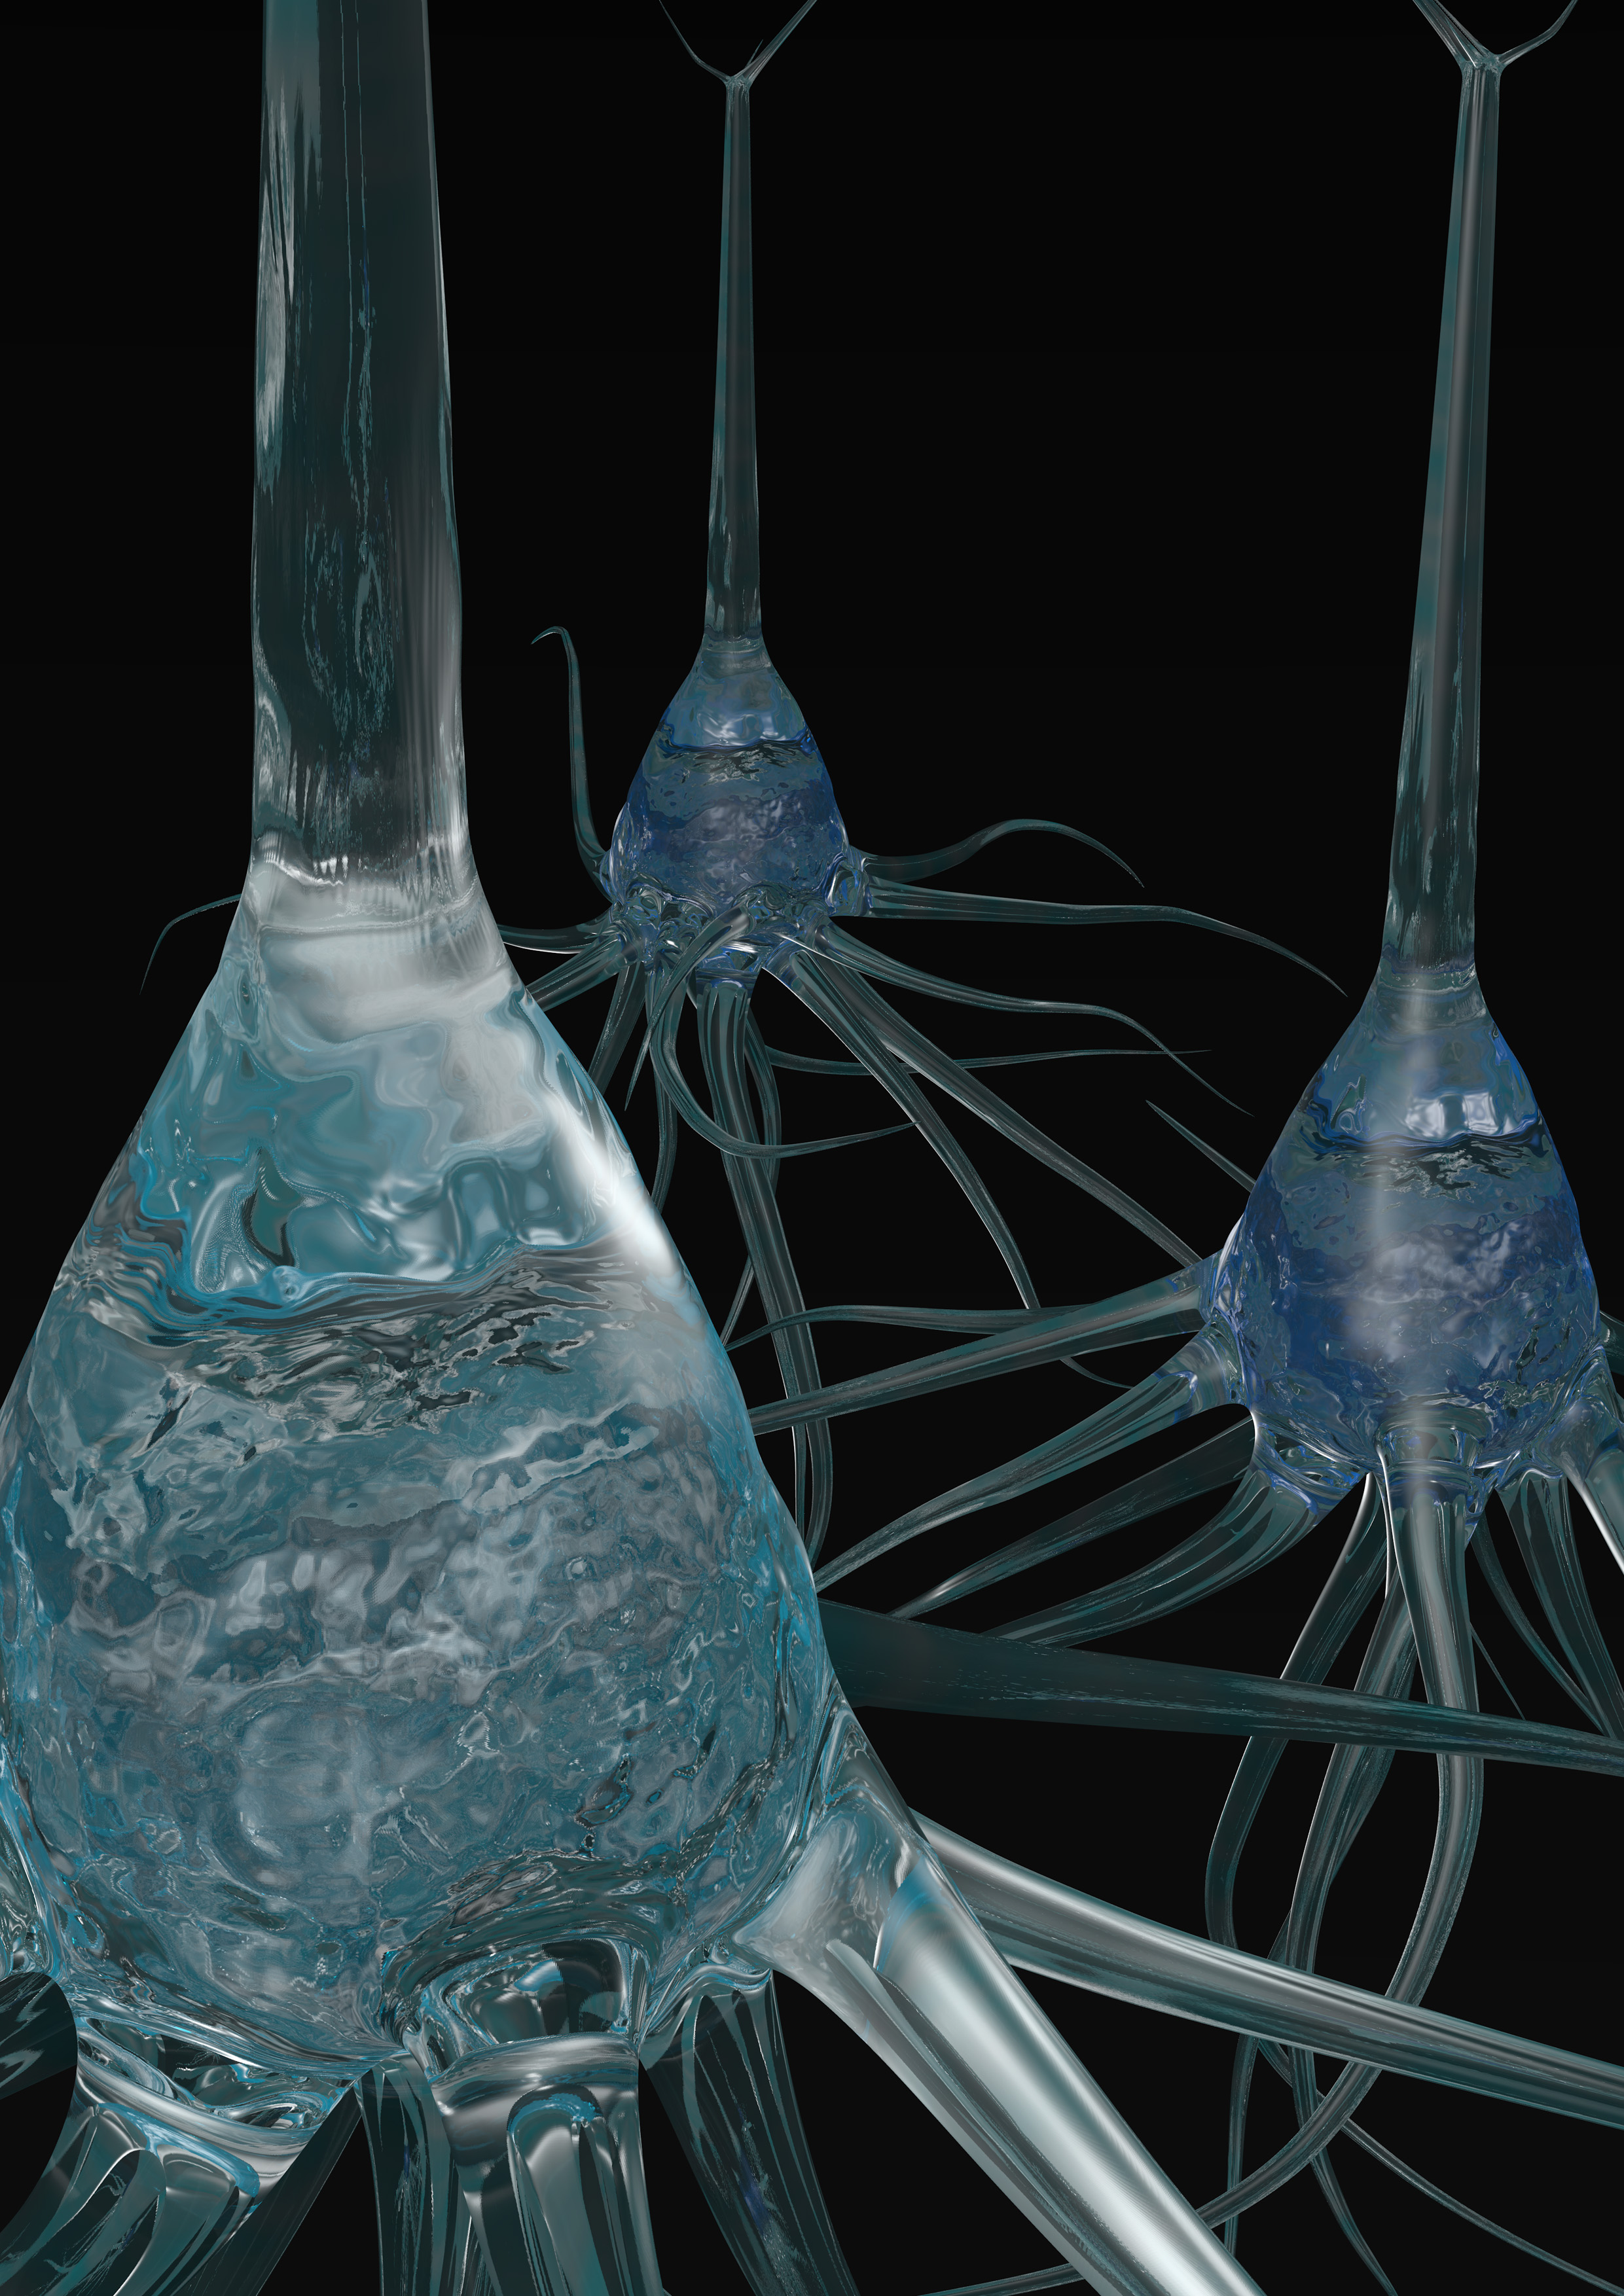 An artist's rendering of individual neurons. A new electrode developed at the University of Michigan can focus on the electrical signals of just one neuron. It may help researchers understand how electrical signals move through neural networks in the brain. Because this electrode is so small and unobtrusive, it may be able to stay in the brain for long periods without upsetting the immune system, perhaps picking up signals to send to prosthetic limbs. Image credit: Takashi Kozai